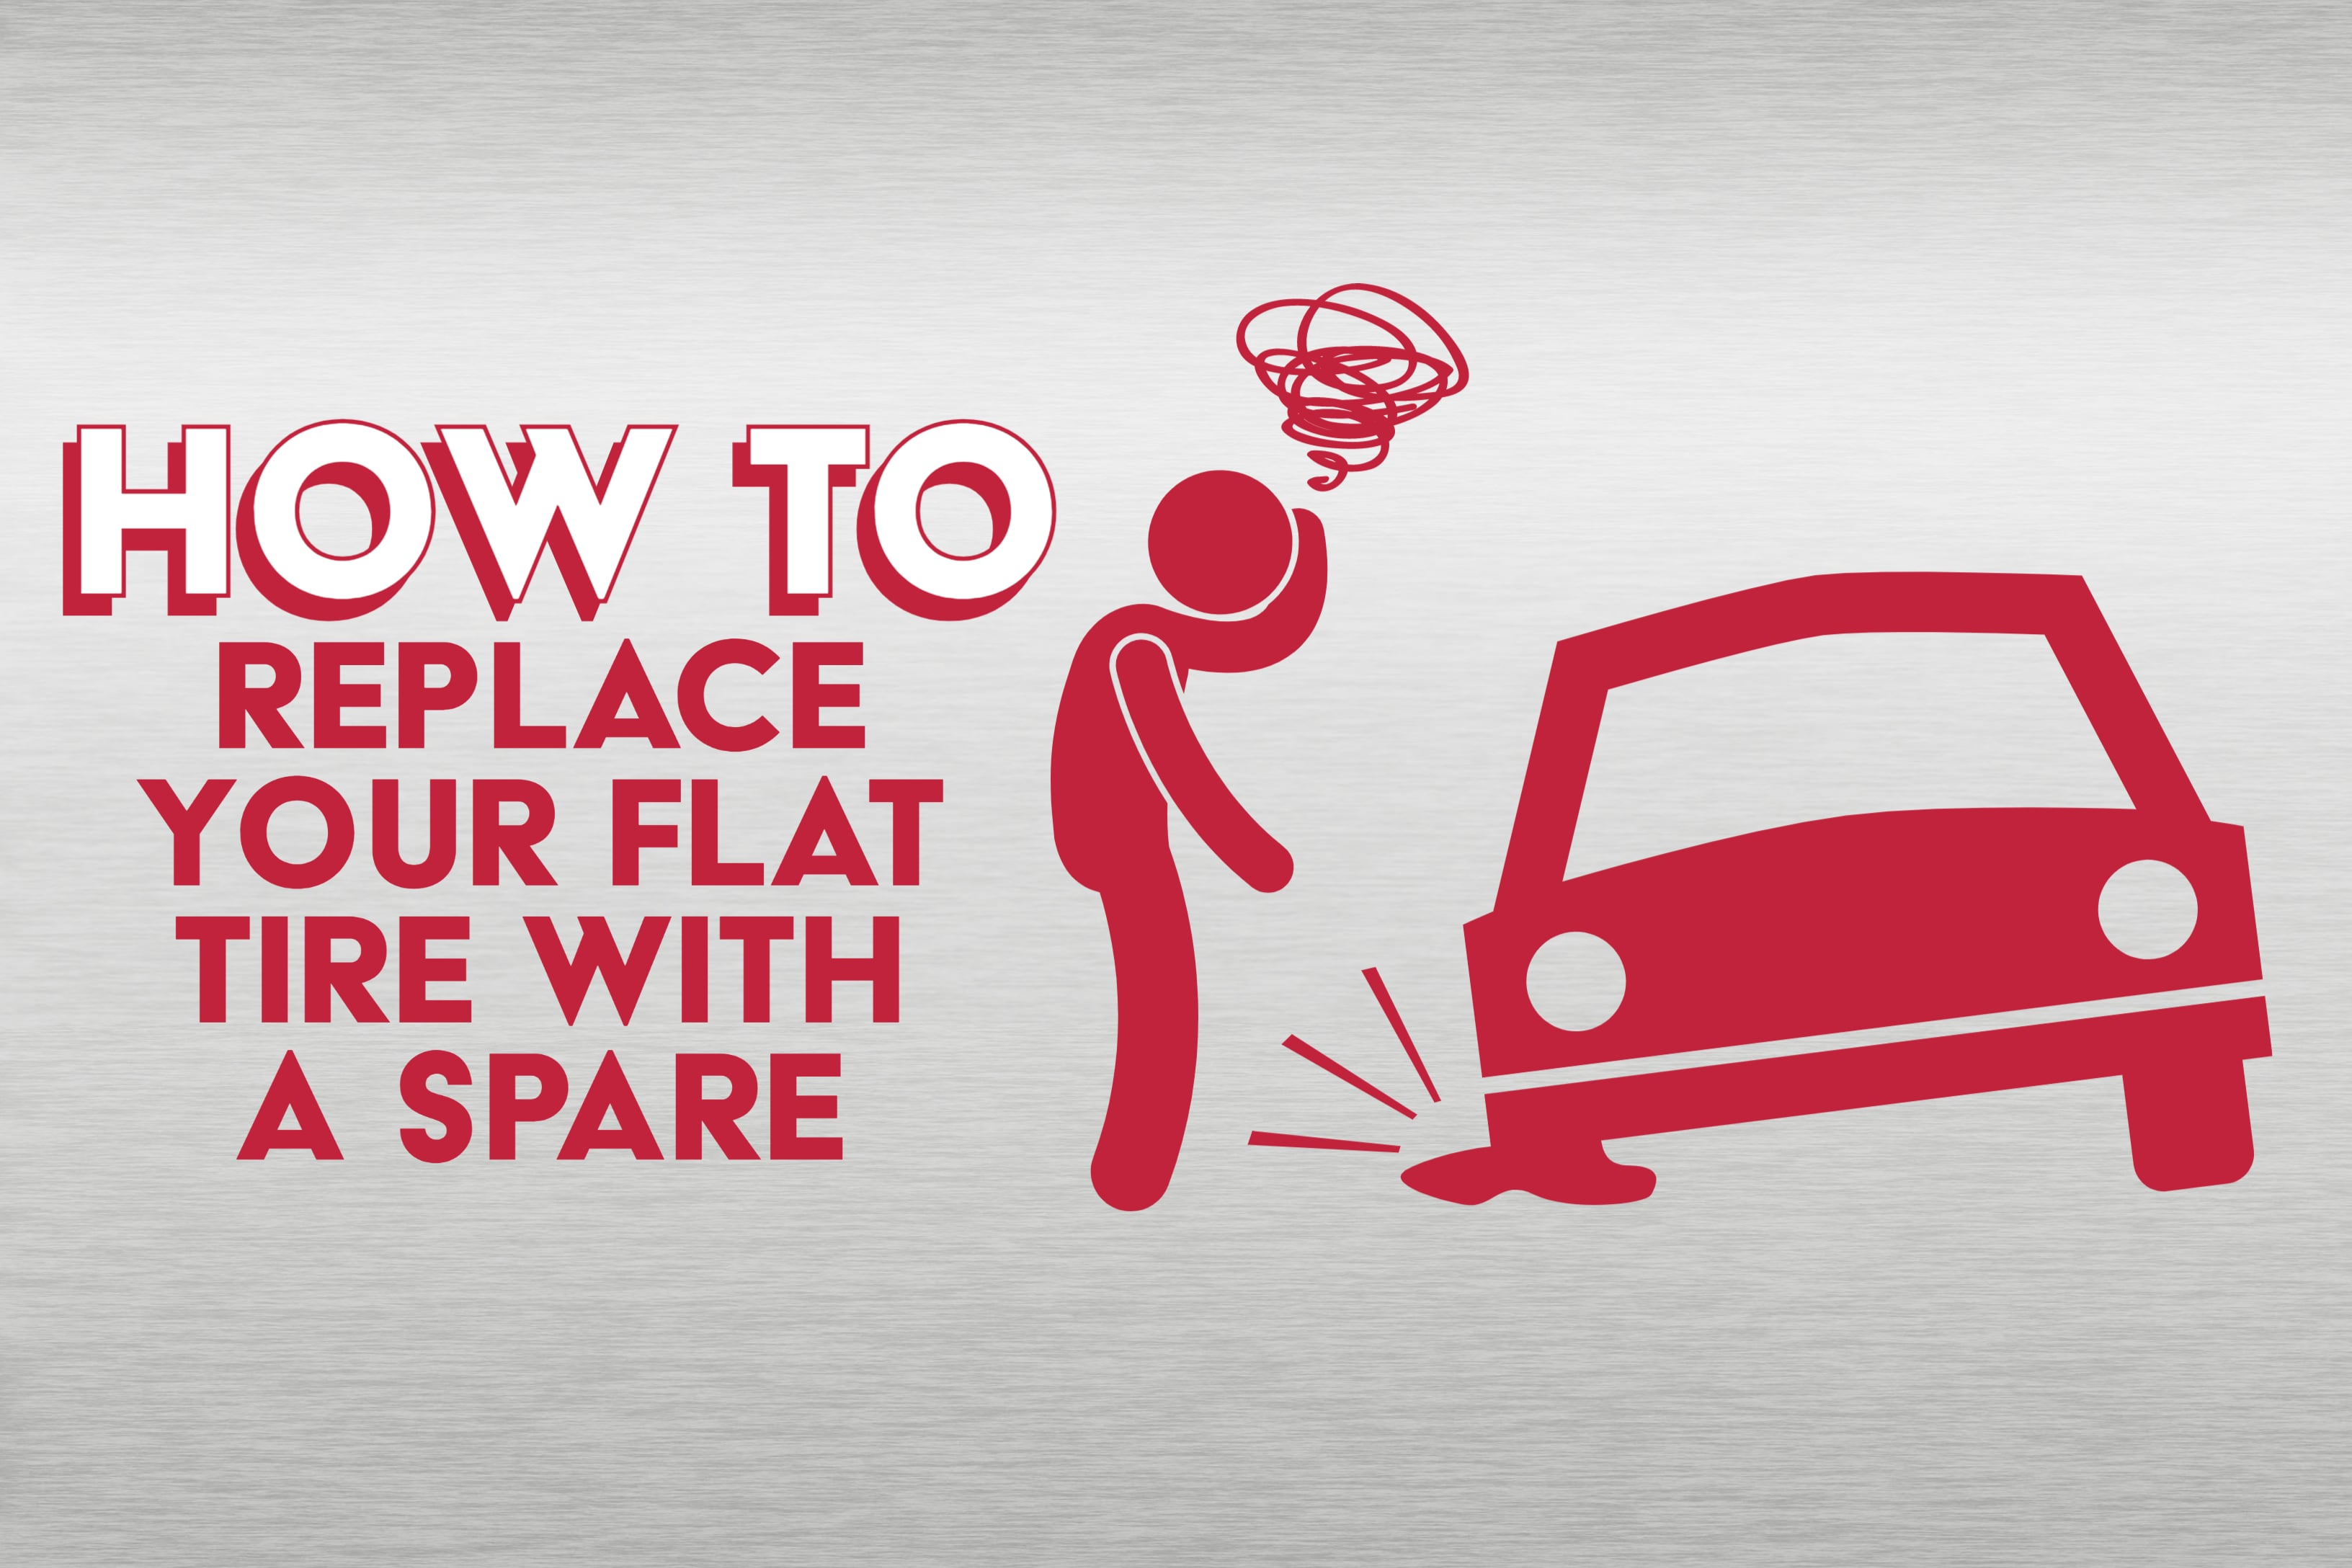 """""""How To Replace Your Flat Tire with A Spare"""" and icon in red with person angry at flat tire"""